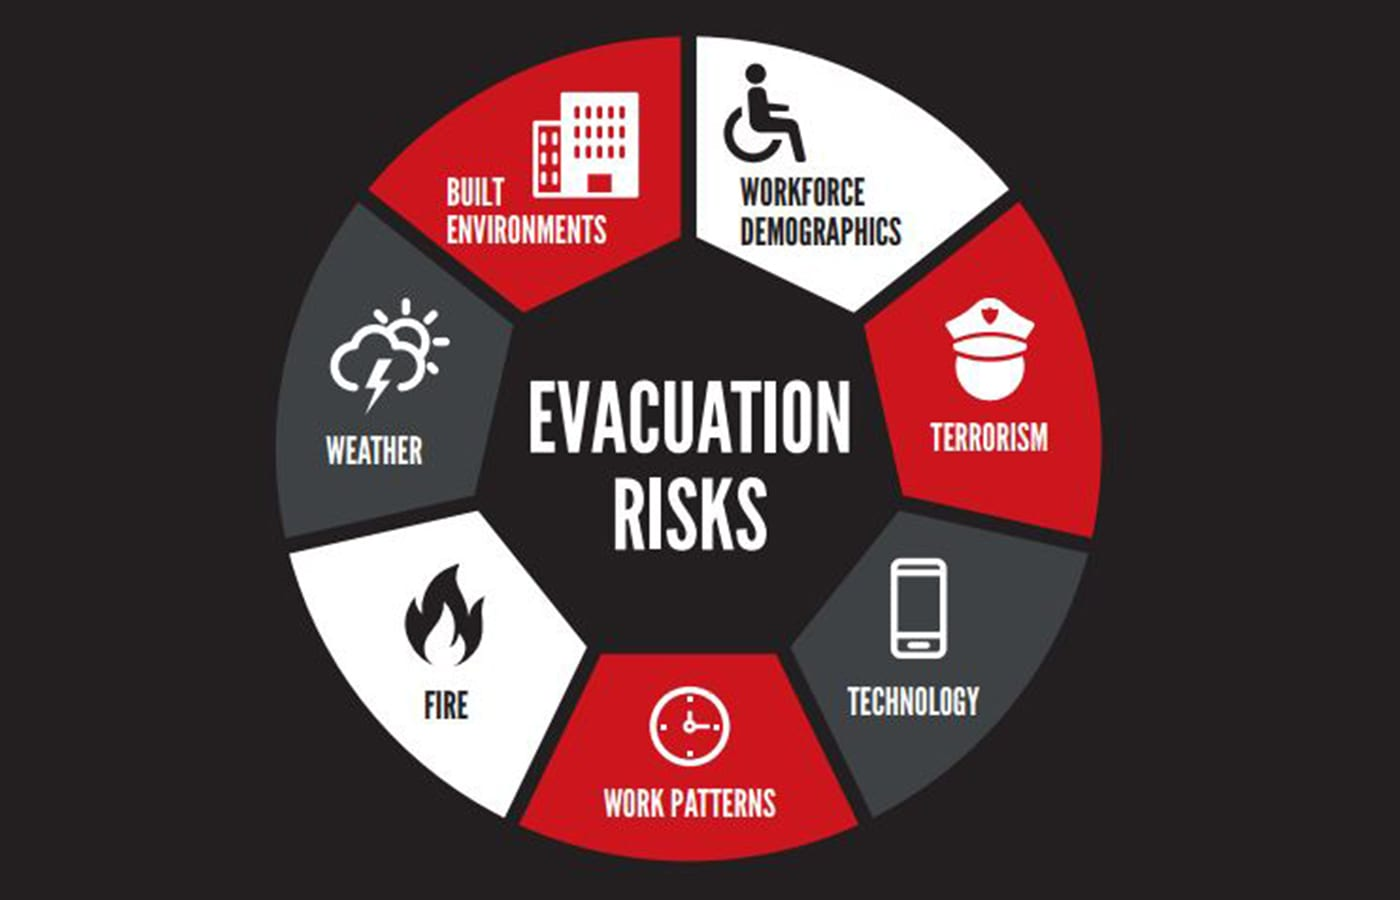 Visitor poll finds 55% of health & safety managers do not include terrorism in evacuation plans